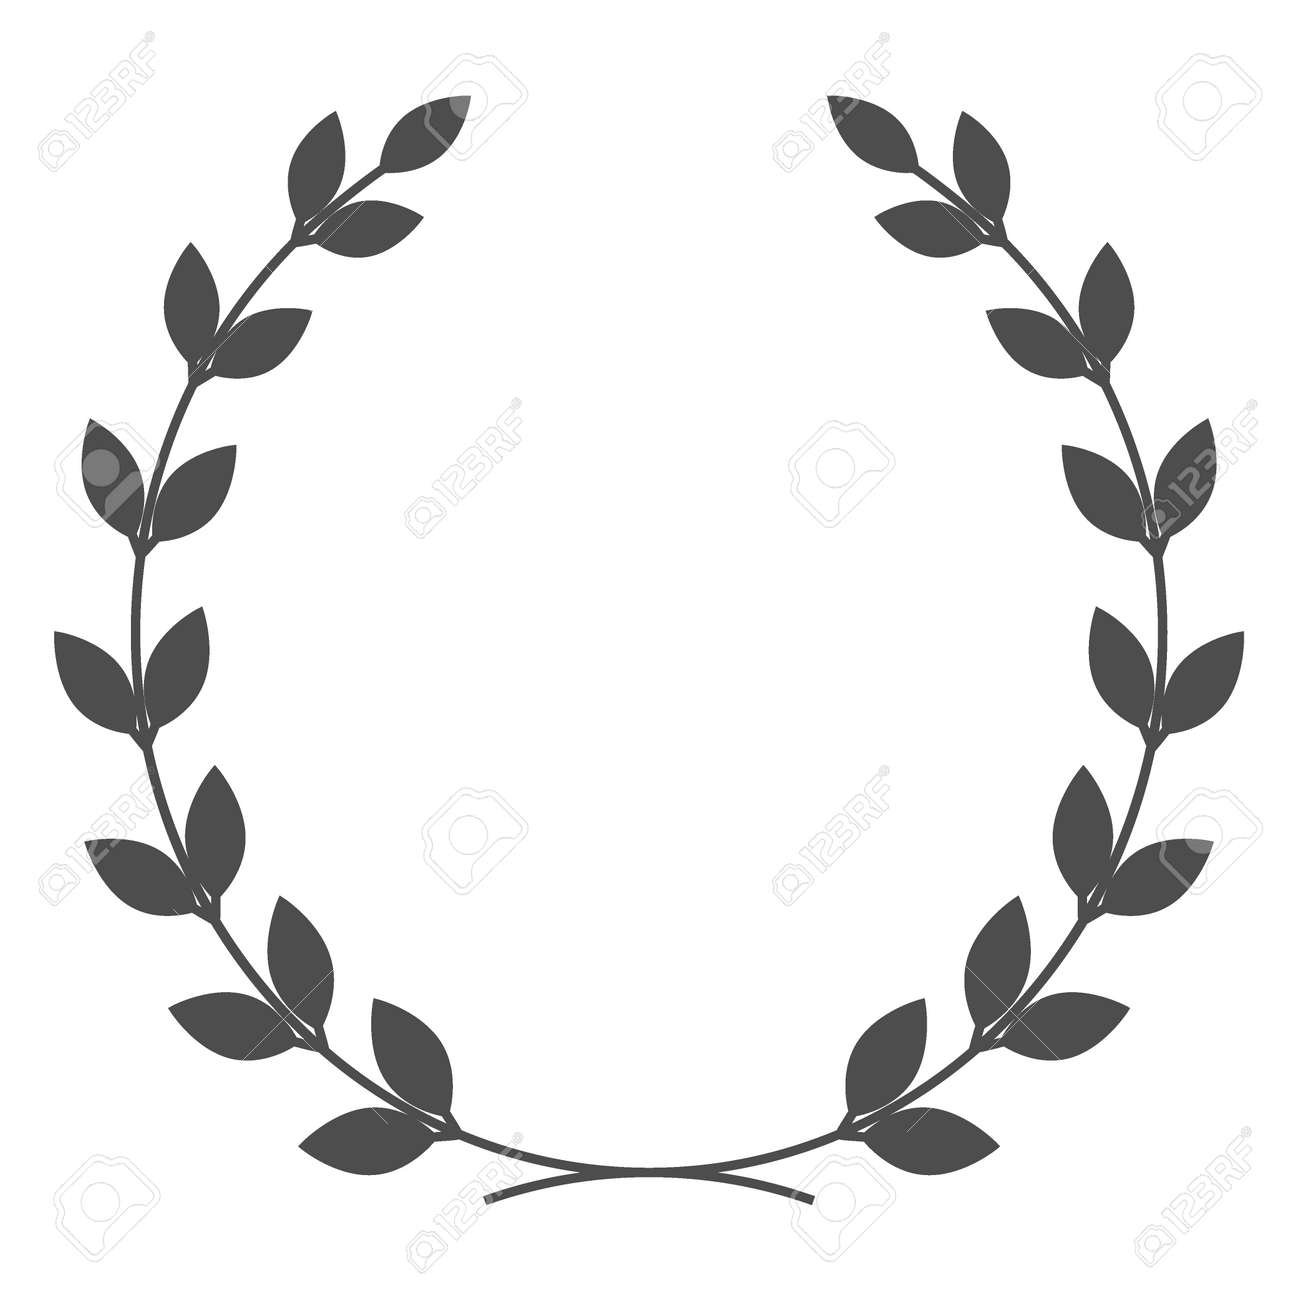 A laurel wreath symbol of victory and achievement design element a laurel wreath symbol of victory and achievement design element for construction of medals buycottarizona Image collections